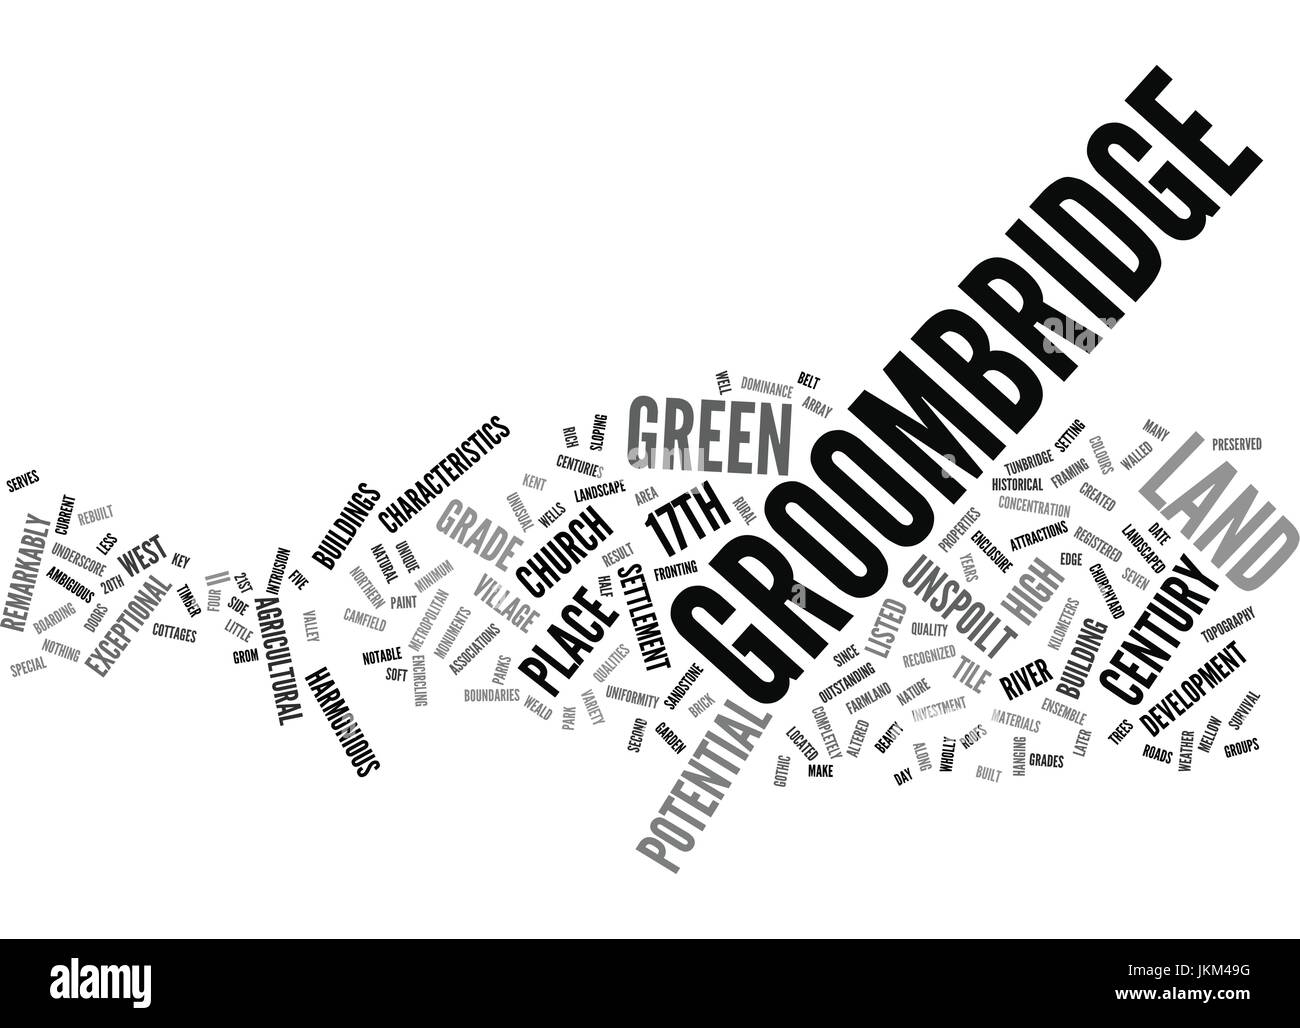 GROOMBRIDGE LAND WITH POTENTIAL Text Background Word Cloud Concept - Stock Image